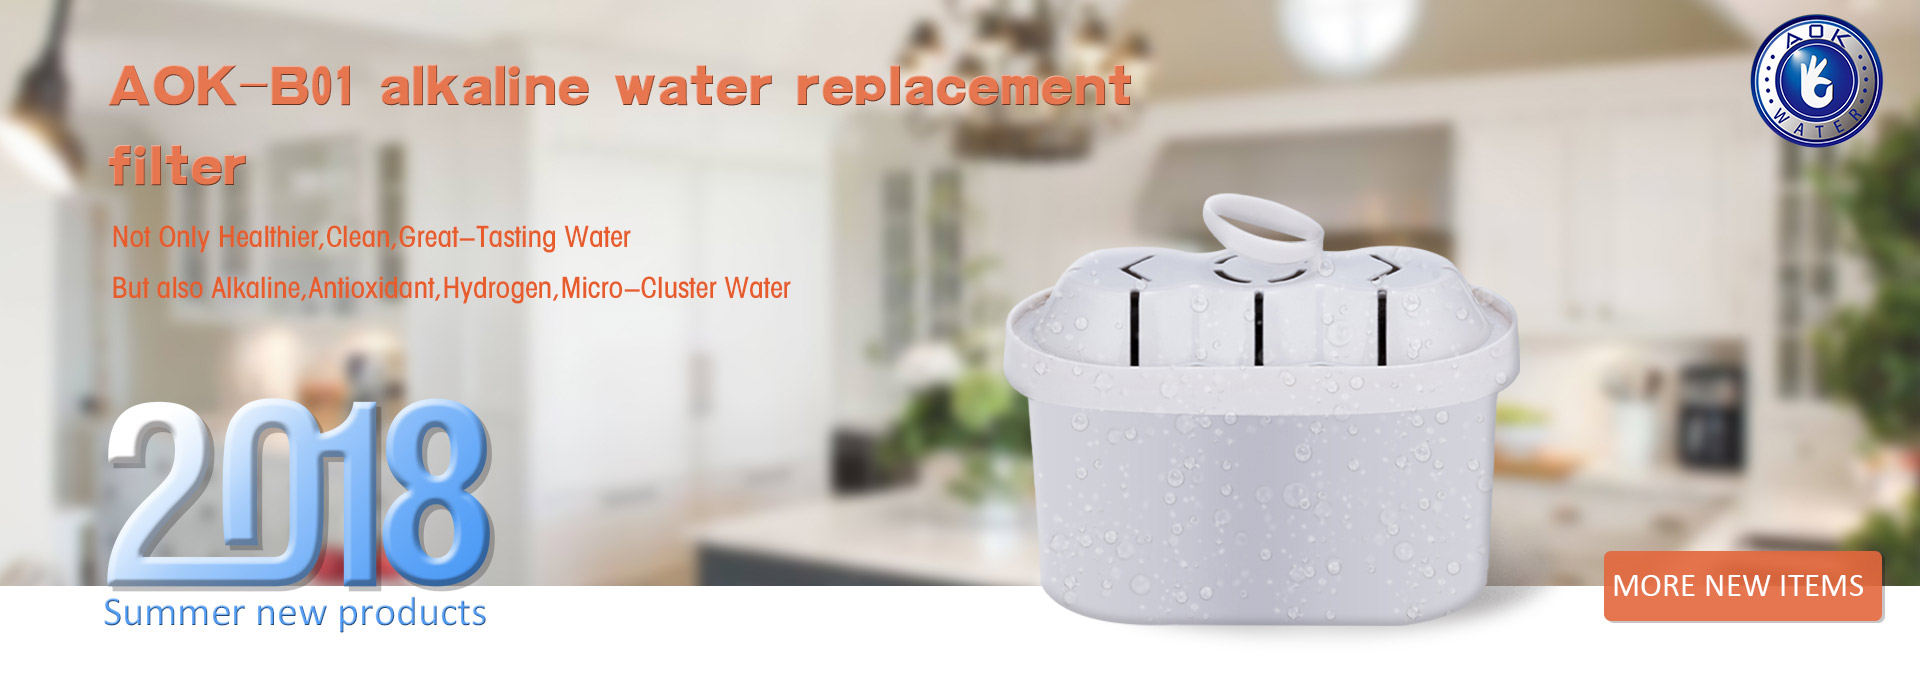 AOK-B01 alkaline water replacement filter